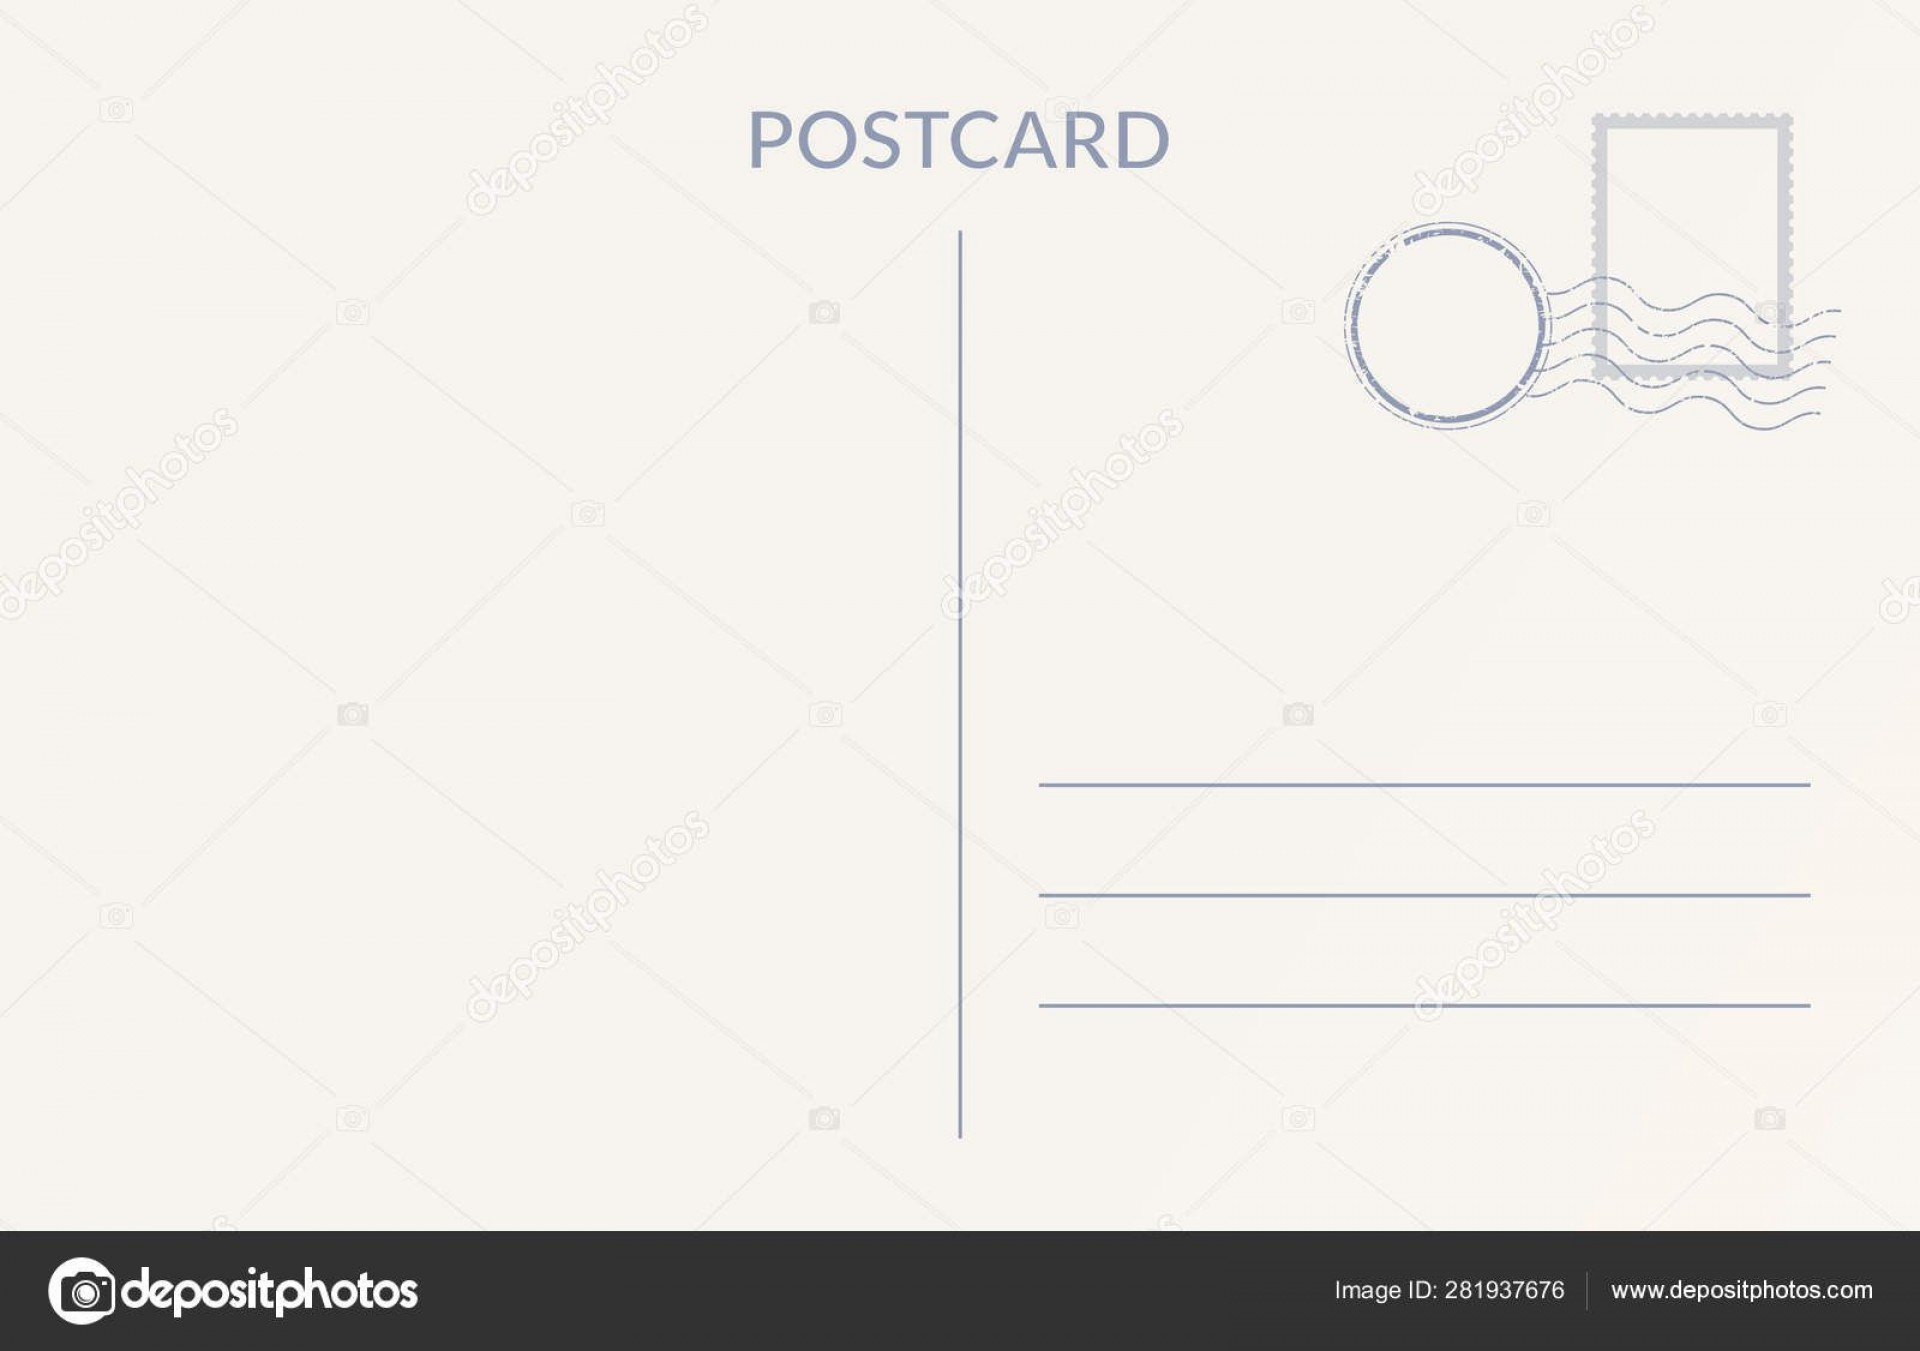 008 Impressive Postcard Template Front And Back Example  Free Word1920